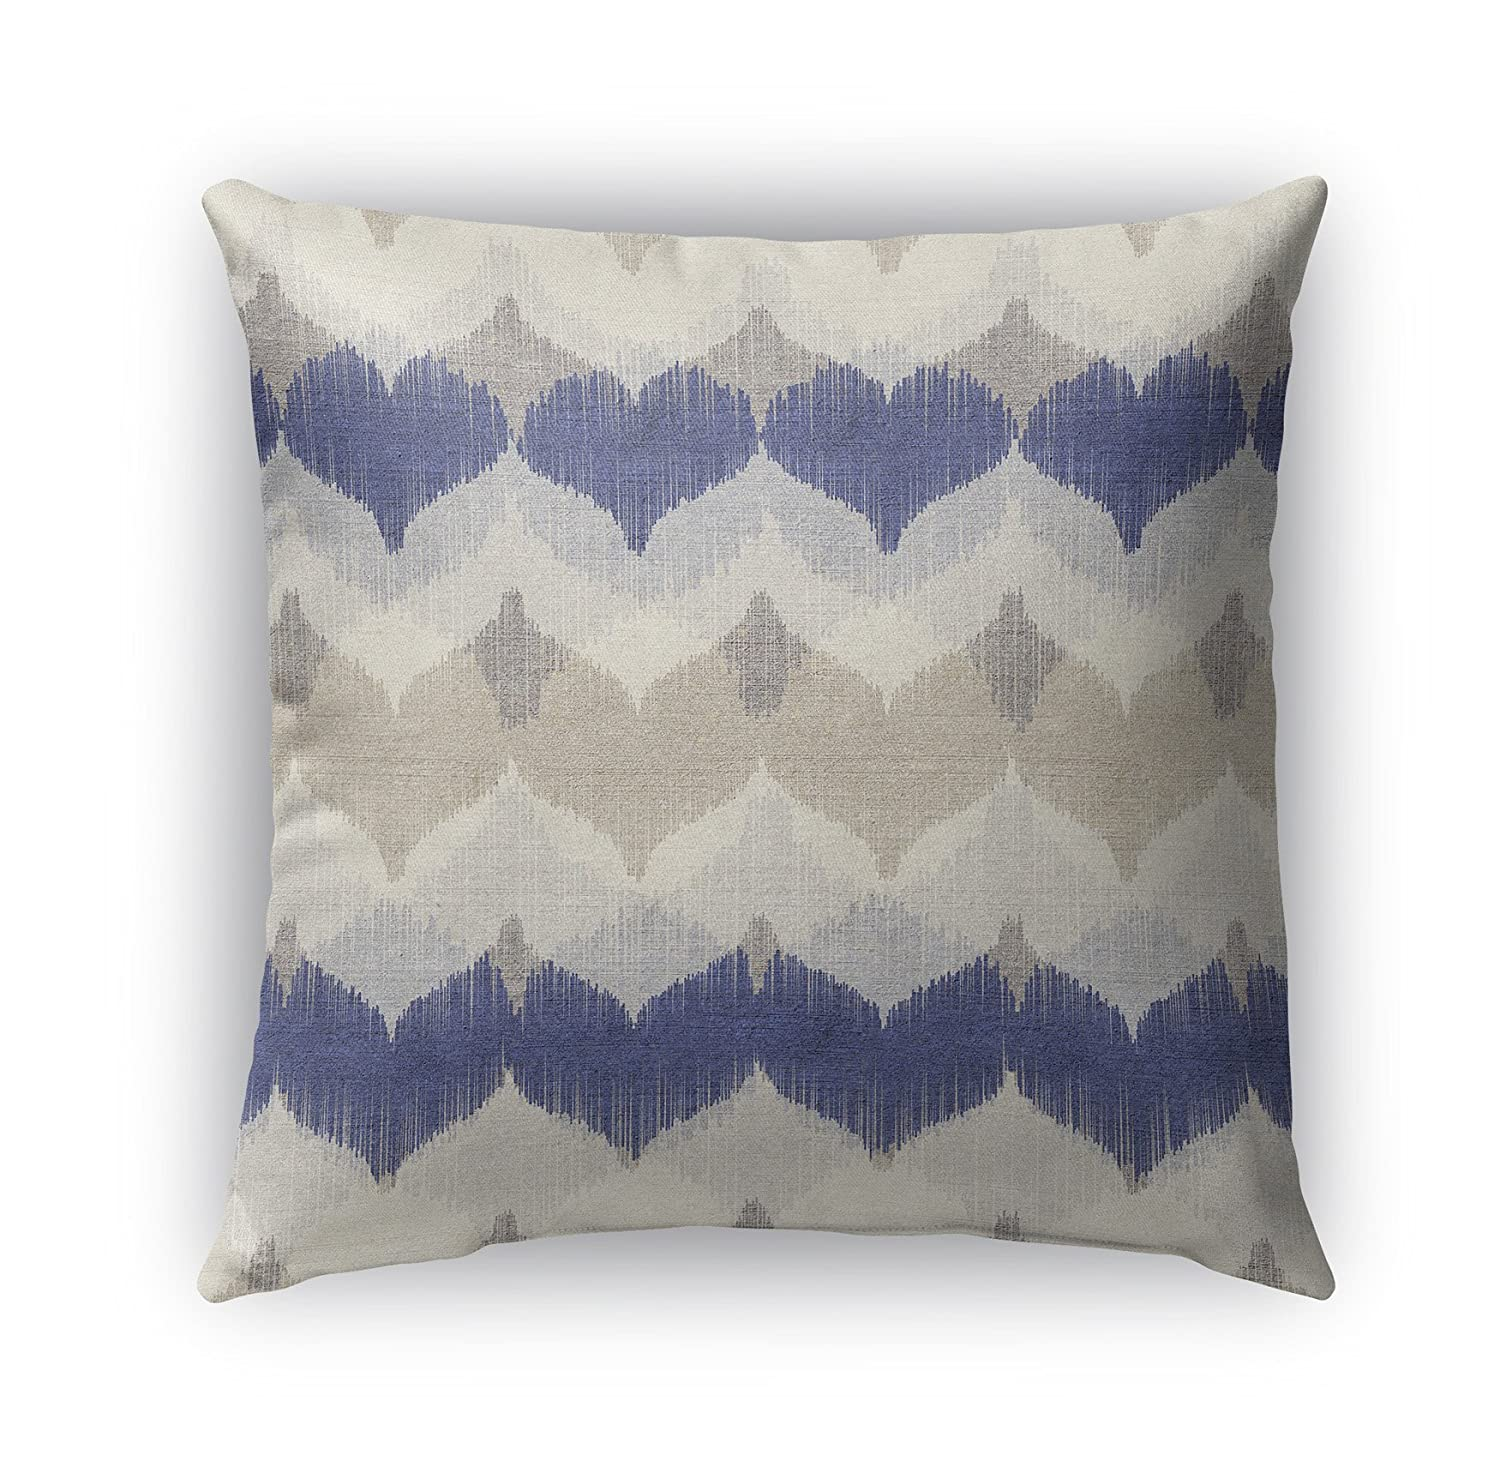 ArtVerse Katelyn Smith Louisiana Love 26 x 26 Pillow-Cotton Twill Double Sided Print with Concealed Zipper /& Insert